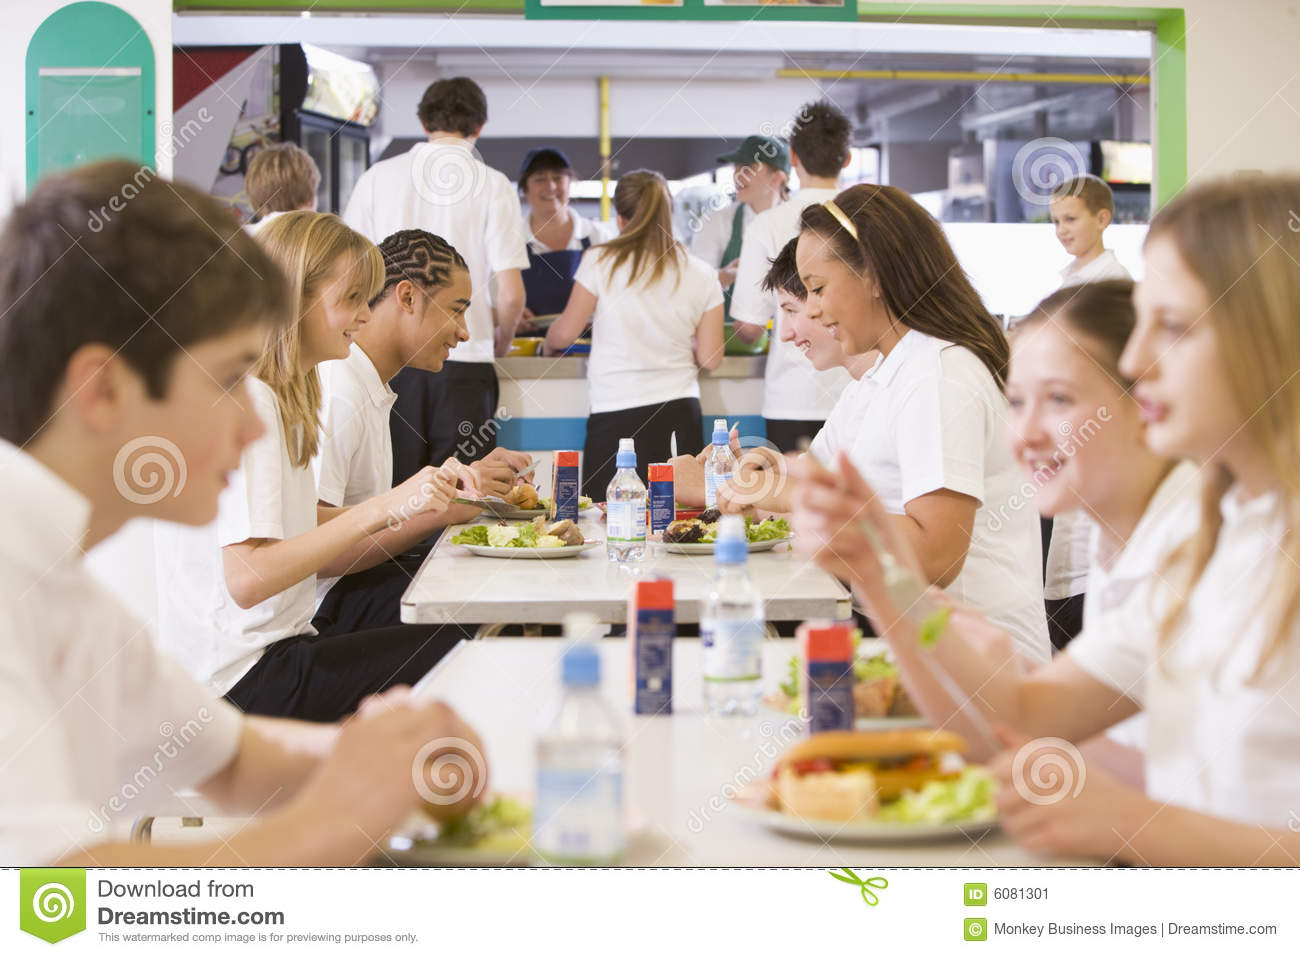 High school students eating in the school cafeteria. Happy High School Student Clipart